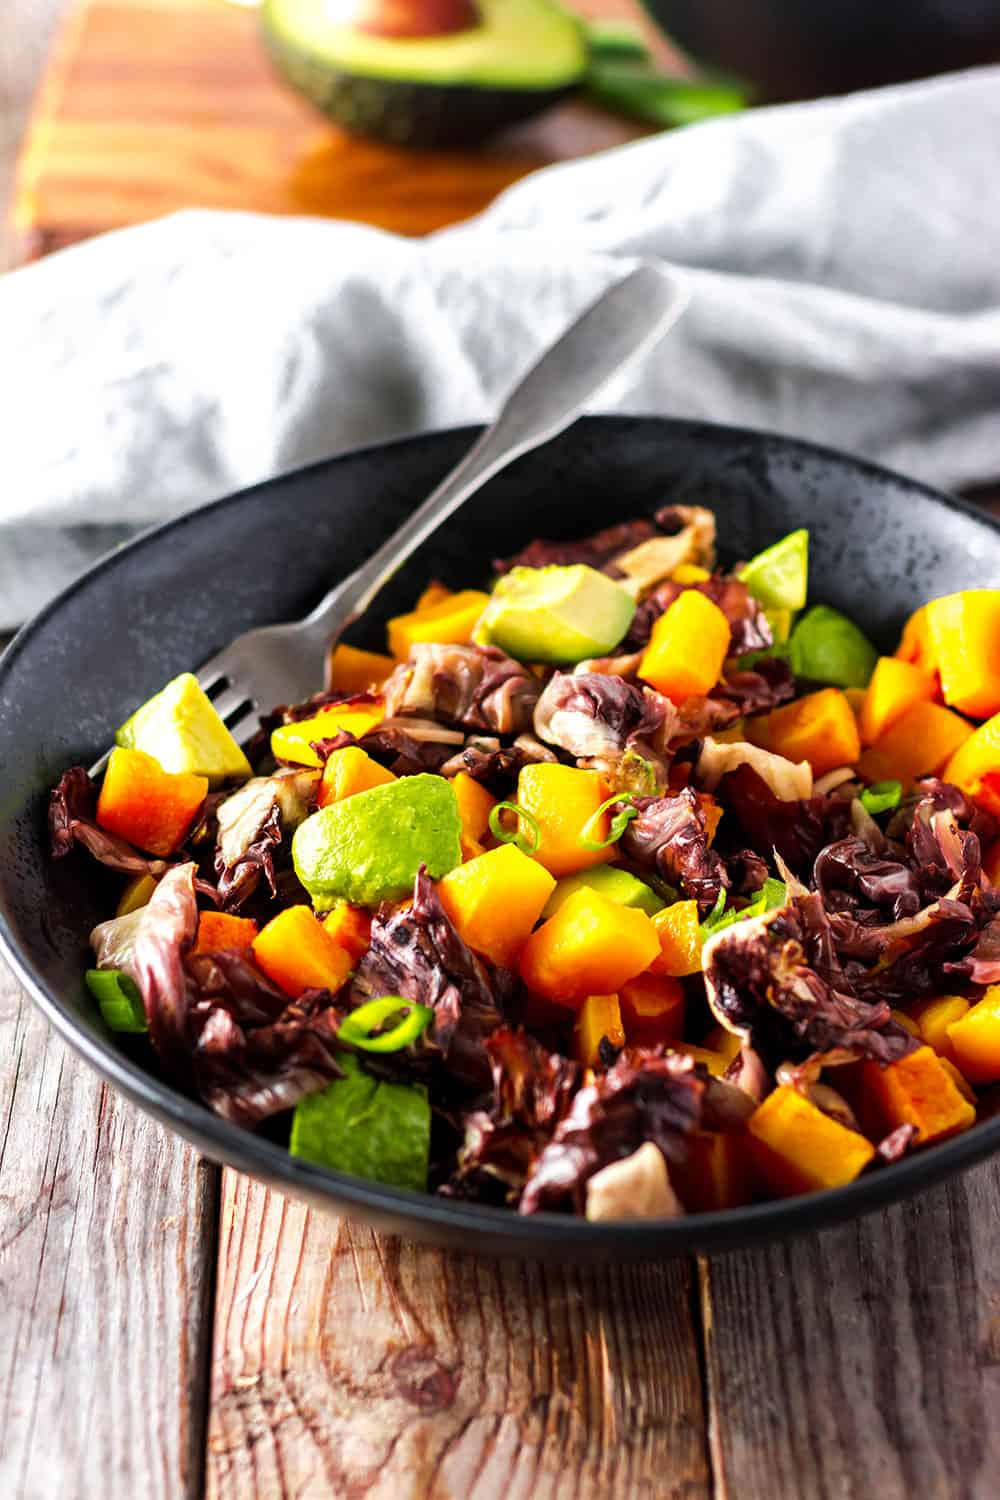 Roasted Radicchio and Butternut Squash